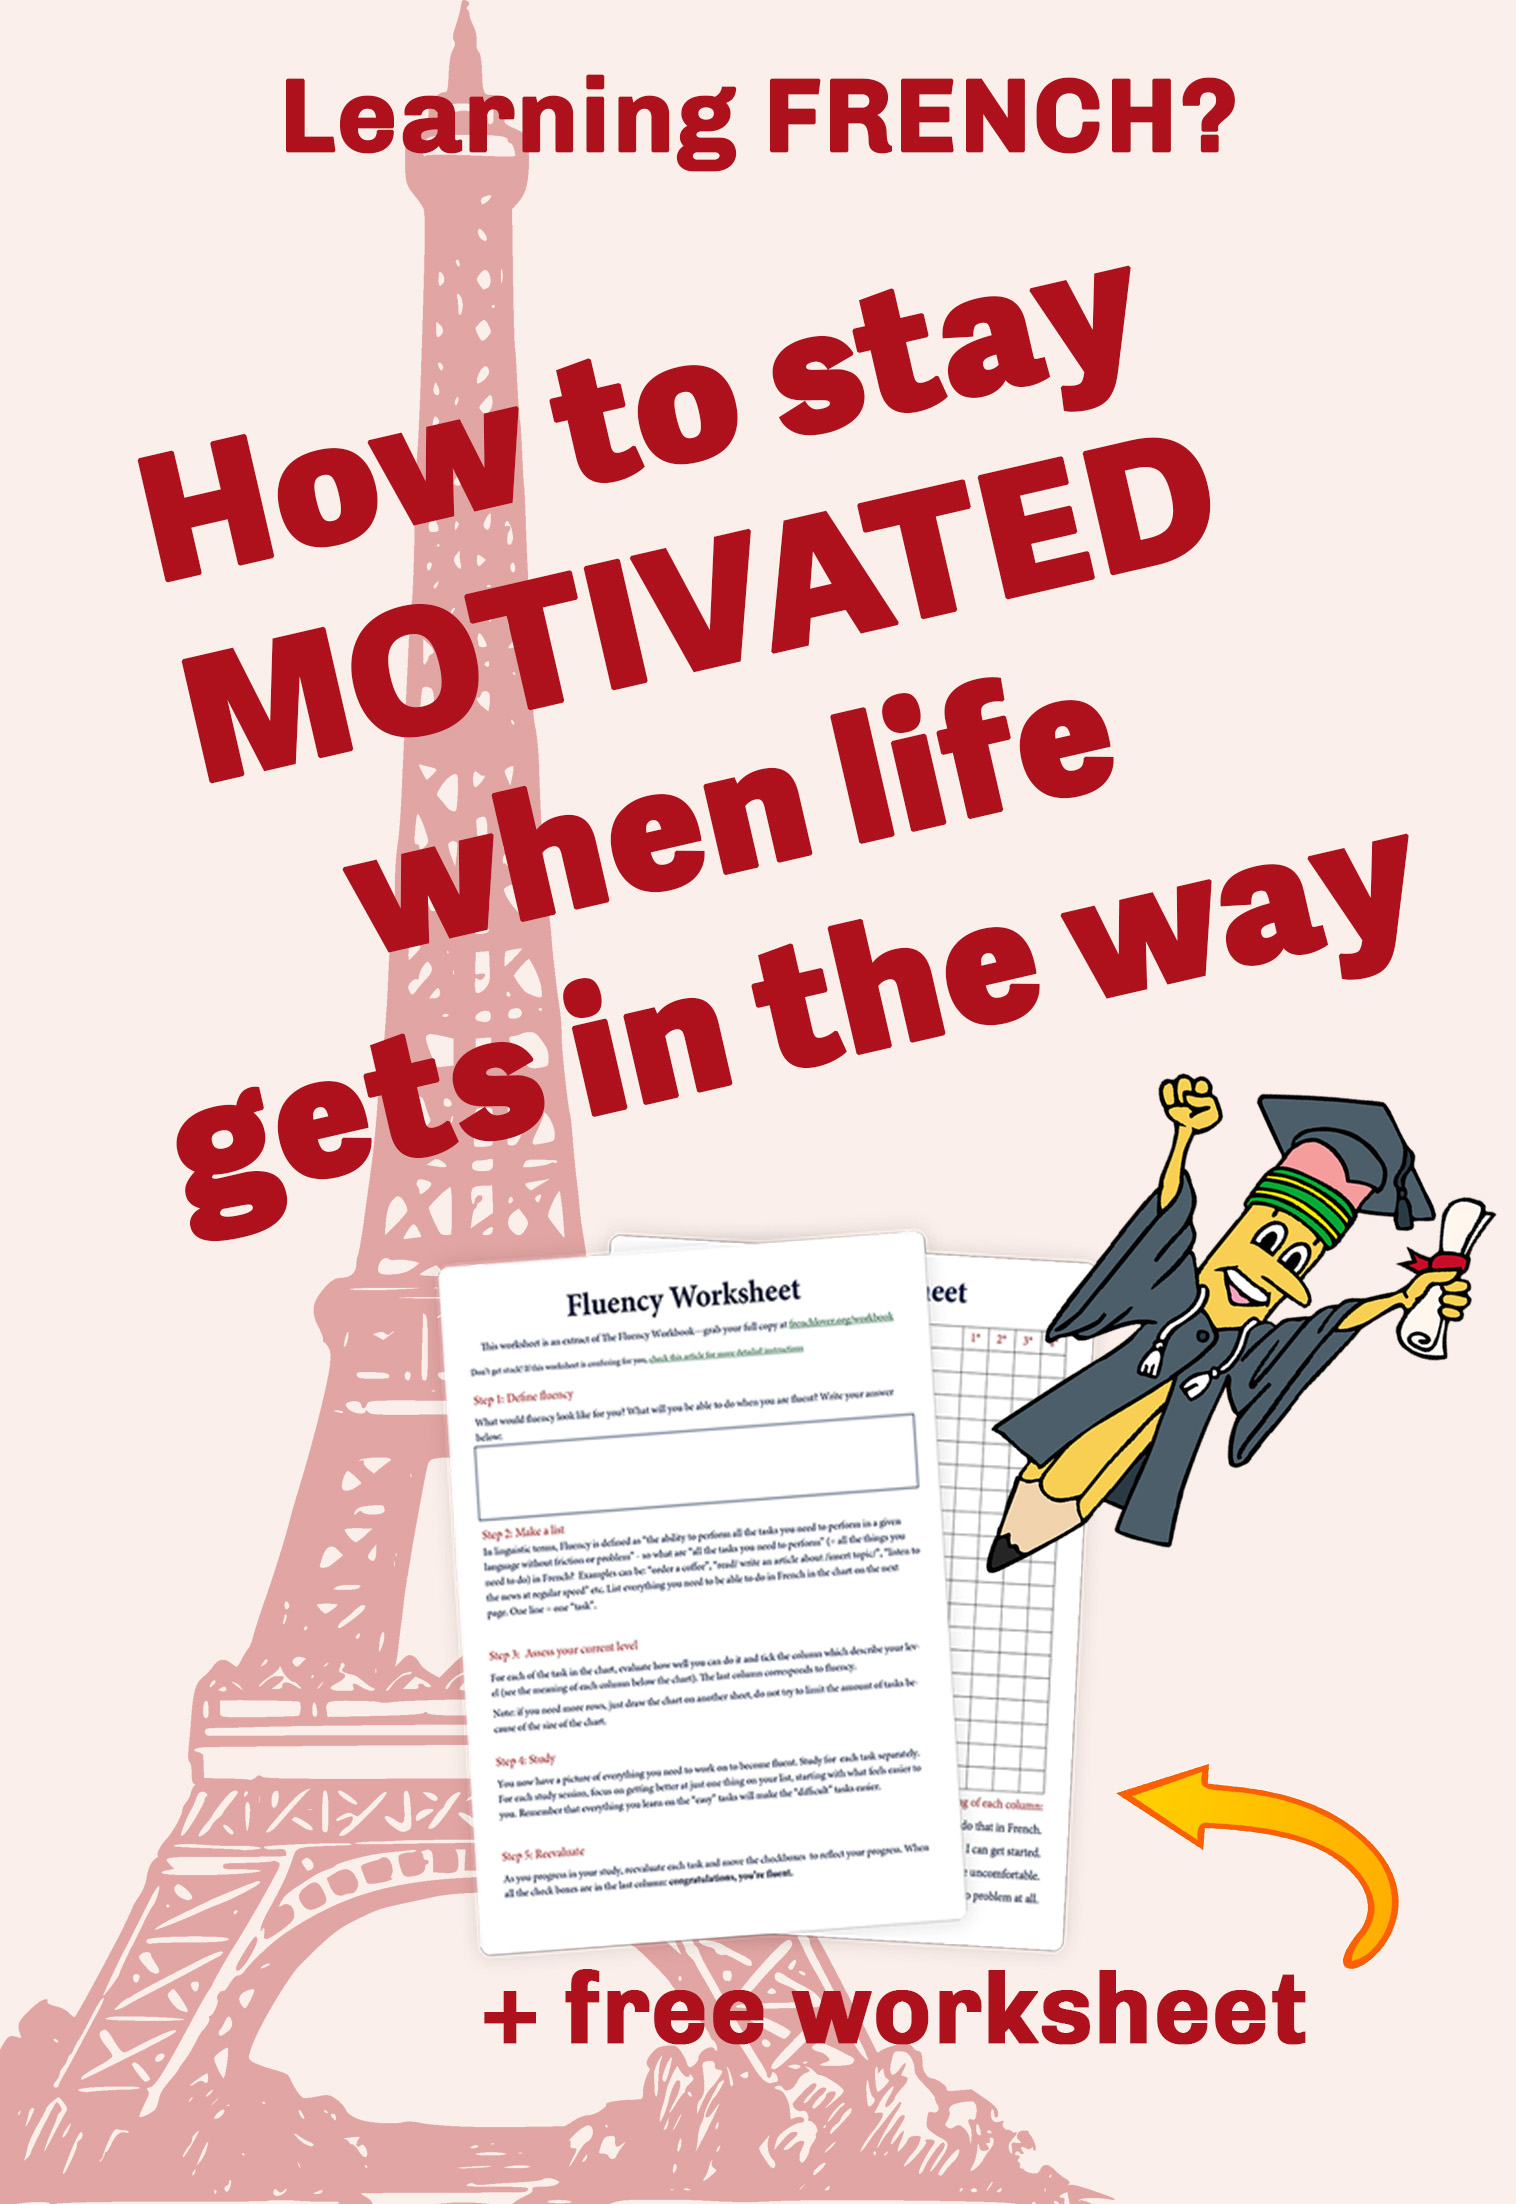 French learning motivation - learn French fast